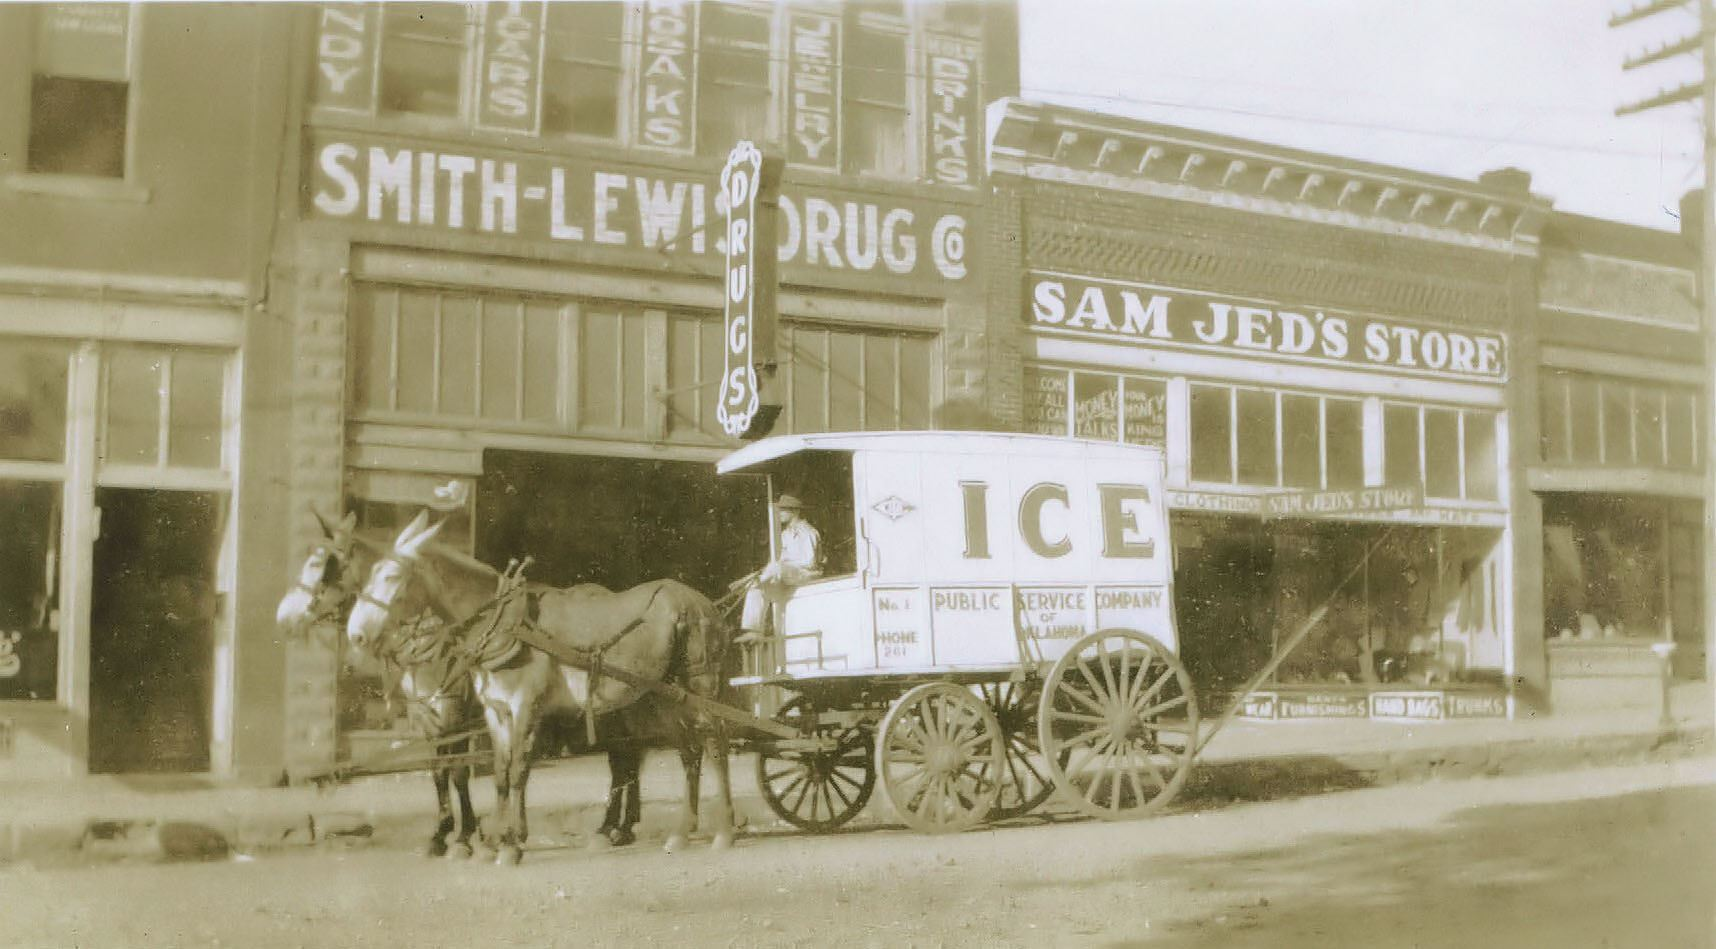 Smith-Lewis Drug Store, Sam Jed's Dry Goods & PSO